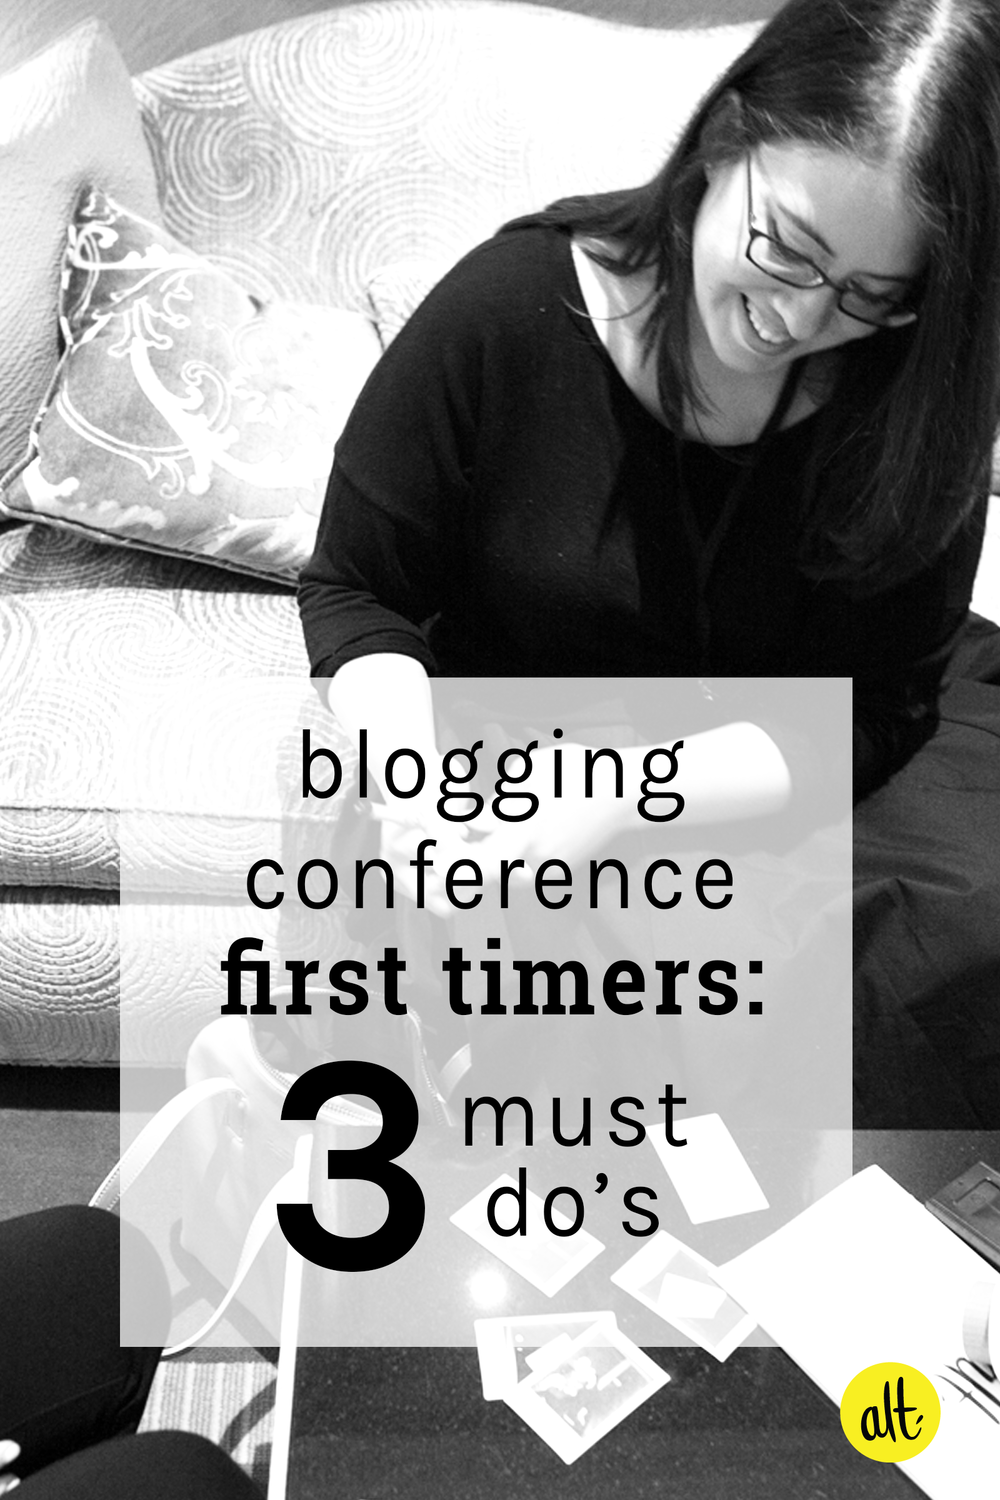 Three things first time attendees to blogging conferences should think about: their business card, dressing their brand, and choosing the perfect tote for their mobile office.